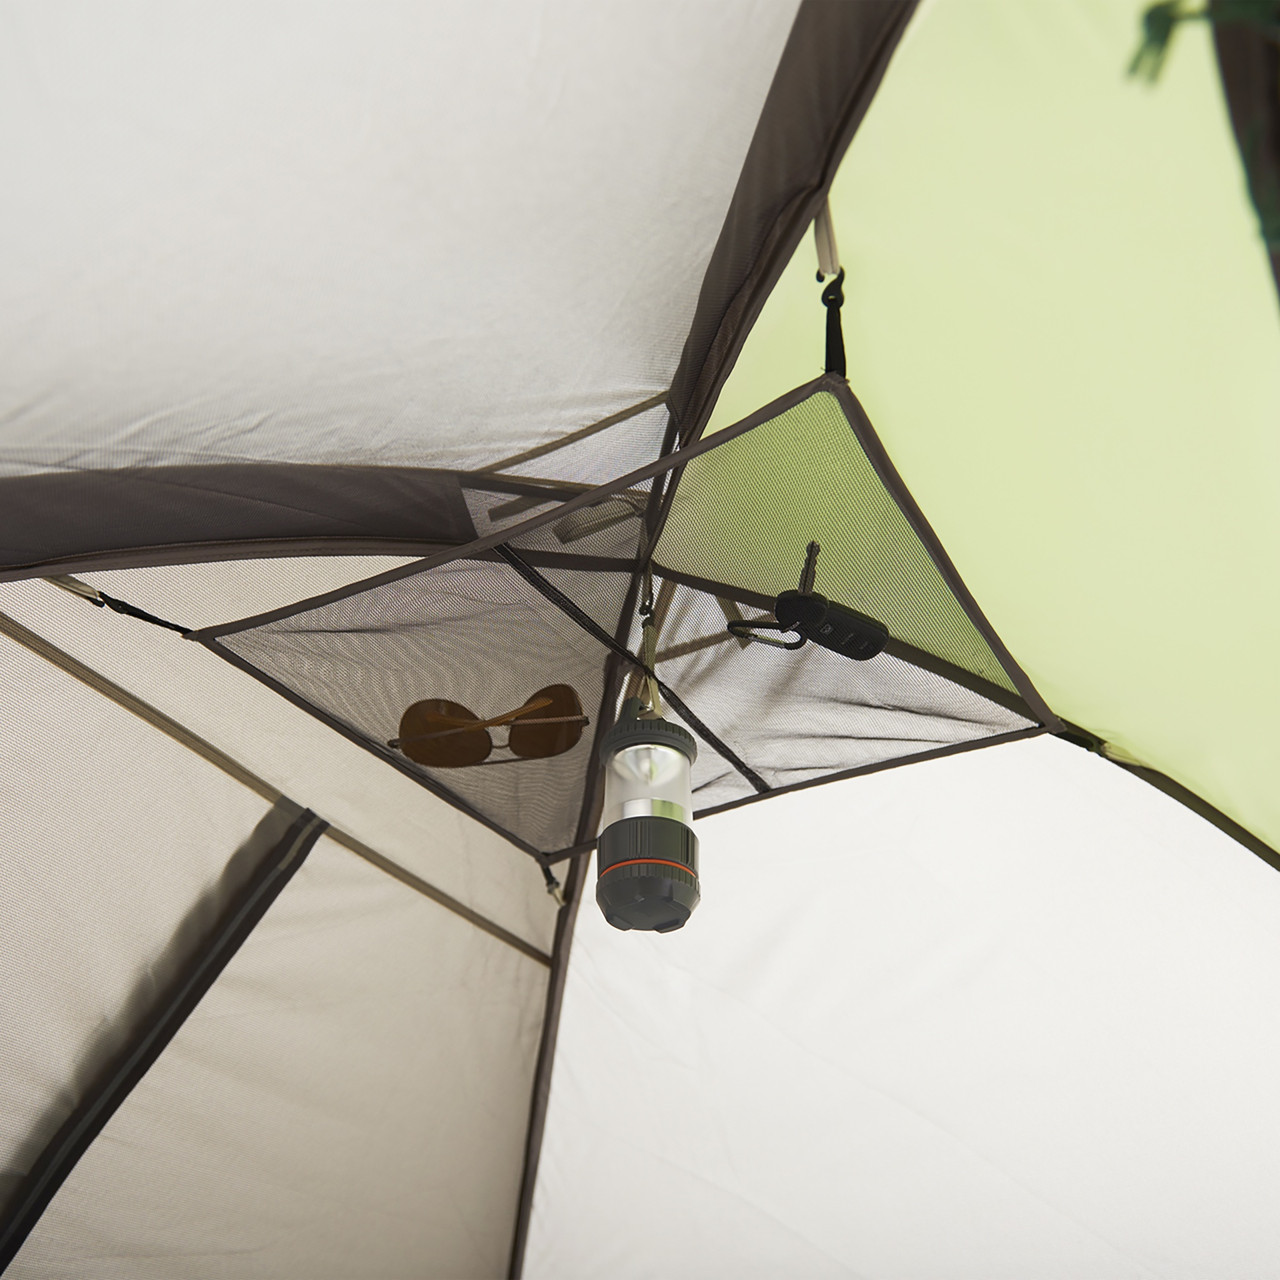 Interior close up of Wenzel Jack Pine 4 Person Dome Tent, showing mesh gear loft